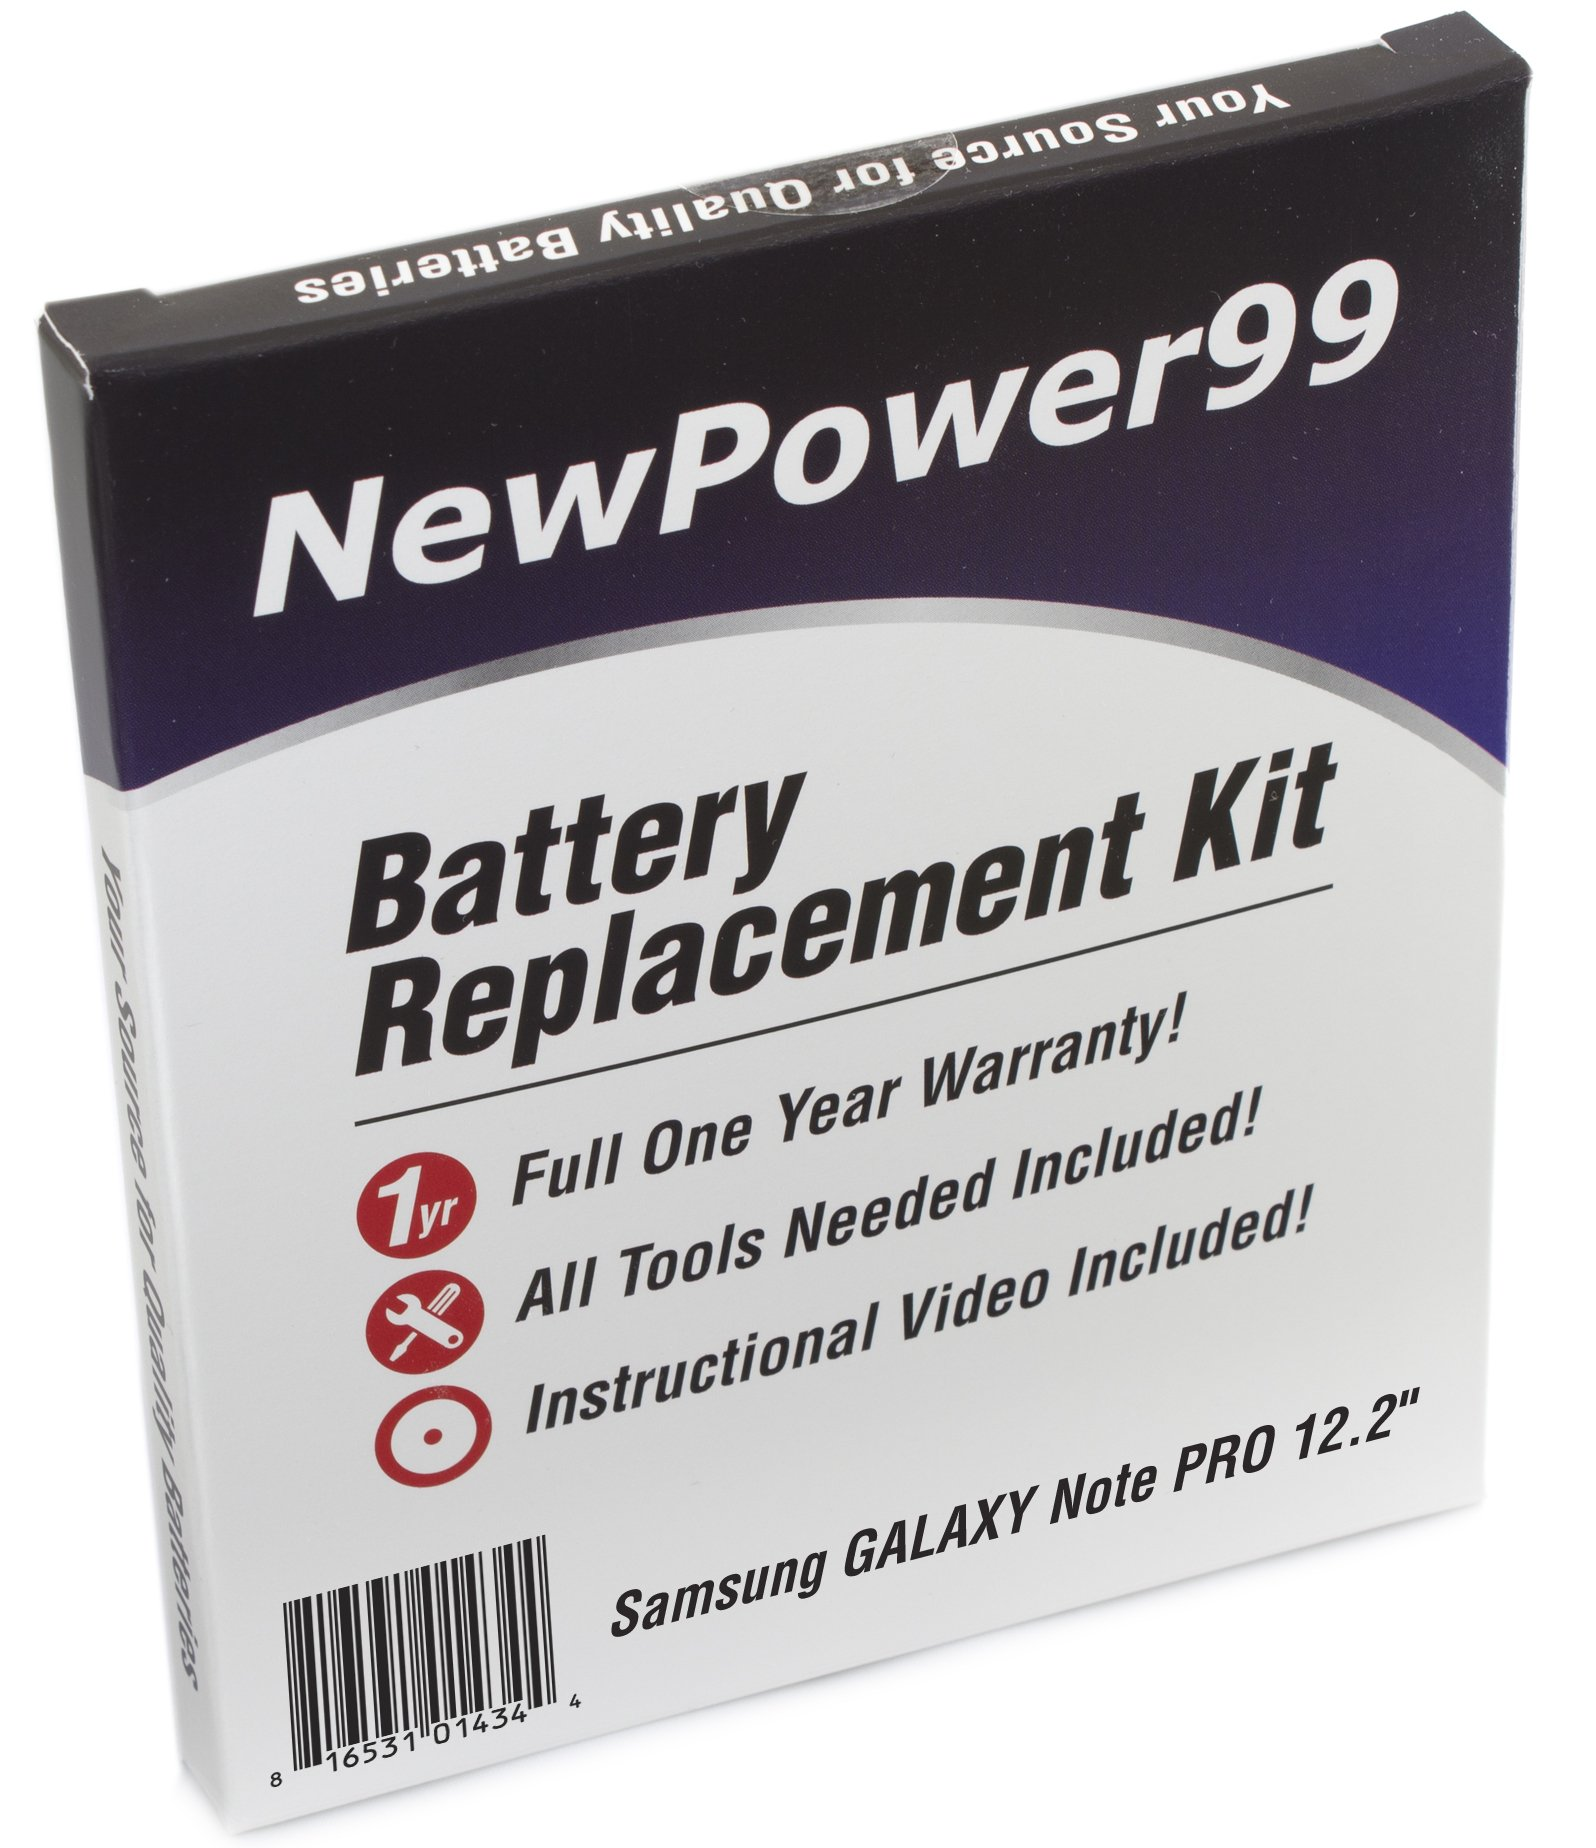 NewPower99 Battery Replacement Kit with Battery, Instructions and Tools for Samsung GALAXY Note PRO 12.2 by NewPower99